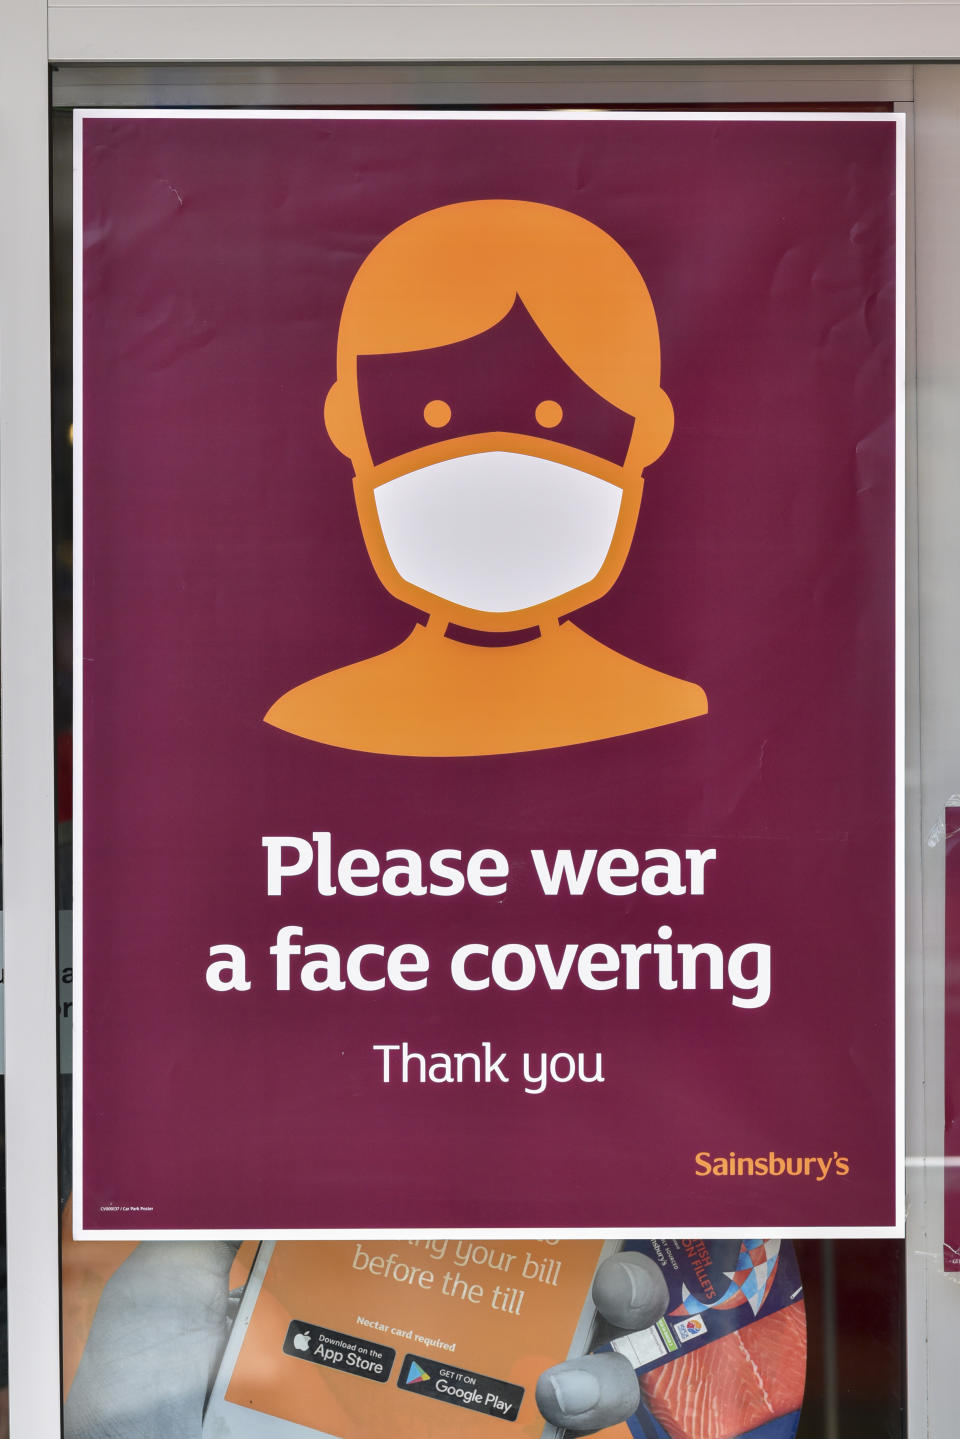 LONDON, UNITED KINGDOM - 2020/07/28: A sign advising customers to wear protective face covering is displayed at Sainsburys store. The Government has made it mandatory to wear face coverings on all public transport and in different places like shops, banks and post offices as well as shops, supermarkets, indoor shopping centres and stations in England. (Photo by Dave Rushen/SOPA Images/LightRocket via Getty Images)